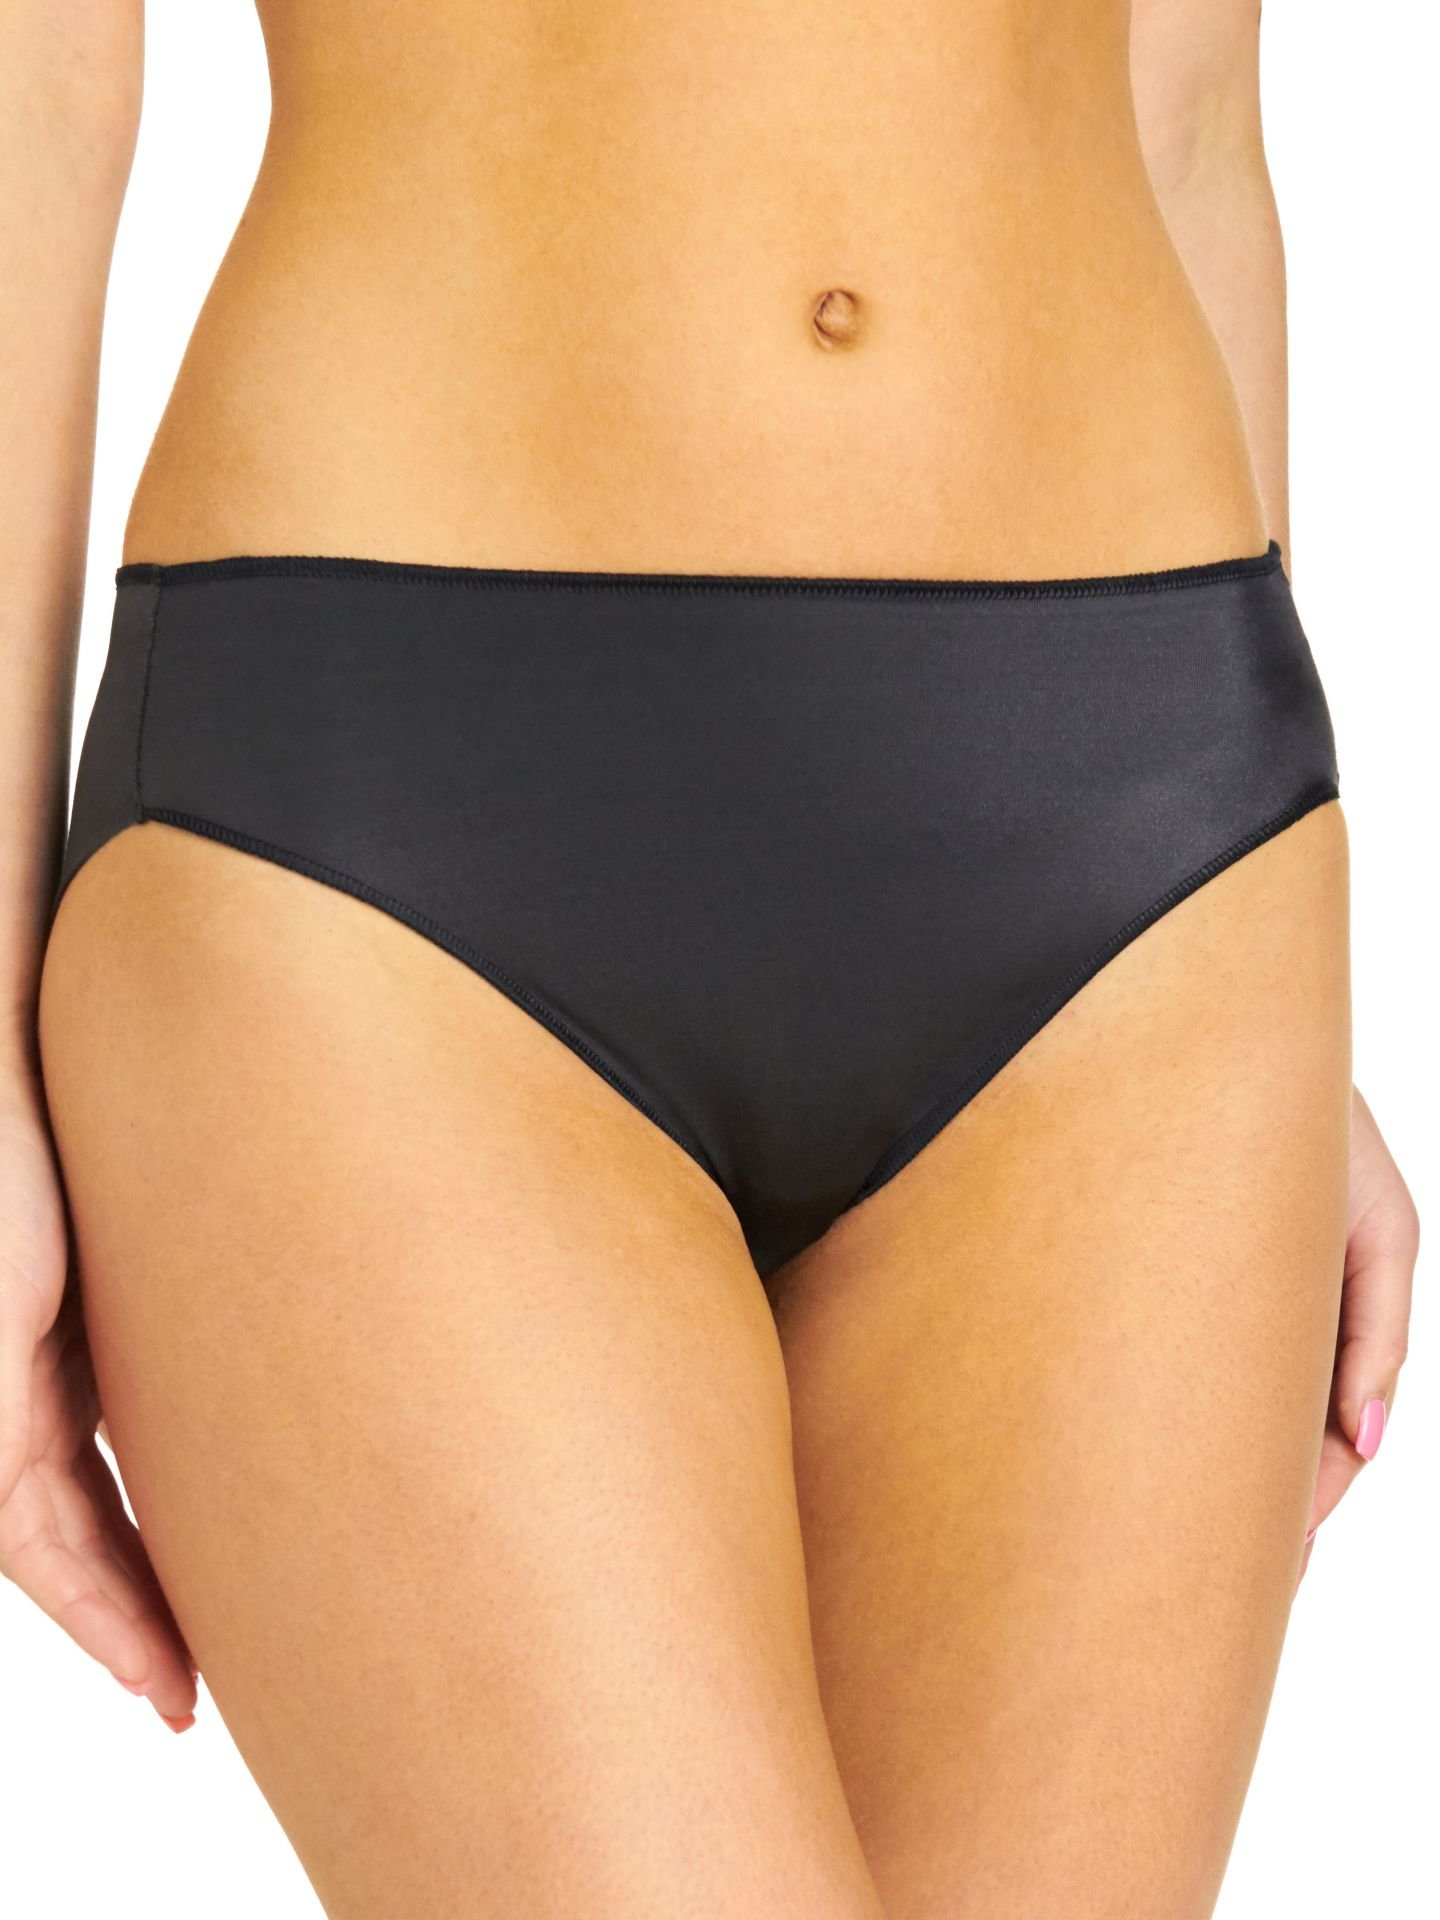 TC Fine Intimates Women's TC Edge Microfiber Hi-Cut Brief A404 Black Briefs LG